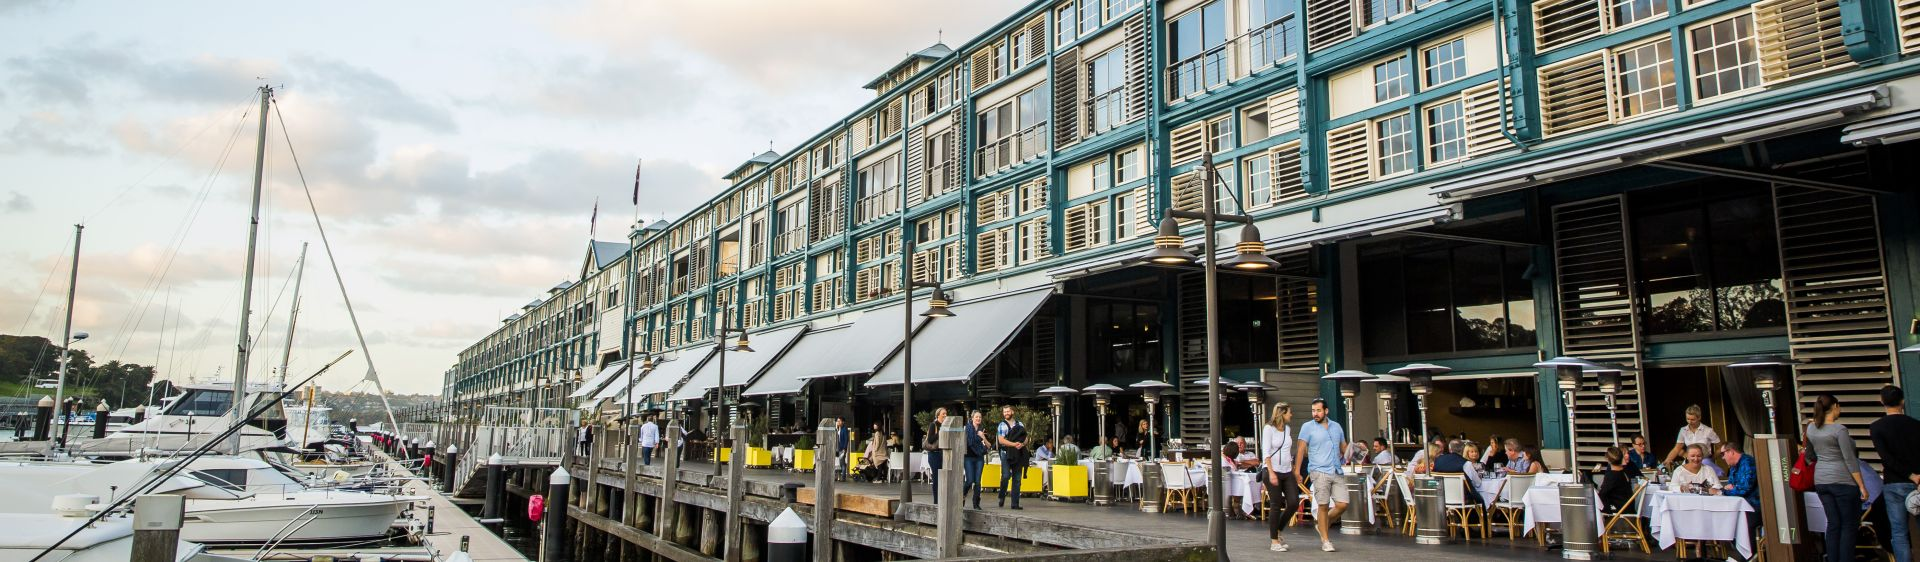 People enjoying the restaurant-lined Finger Wharf in Woolloomooloo, Sydney